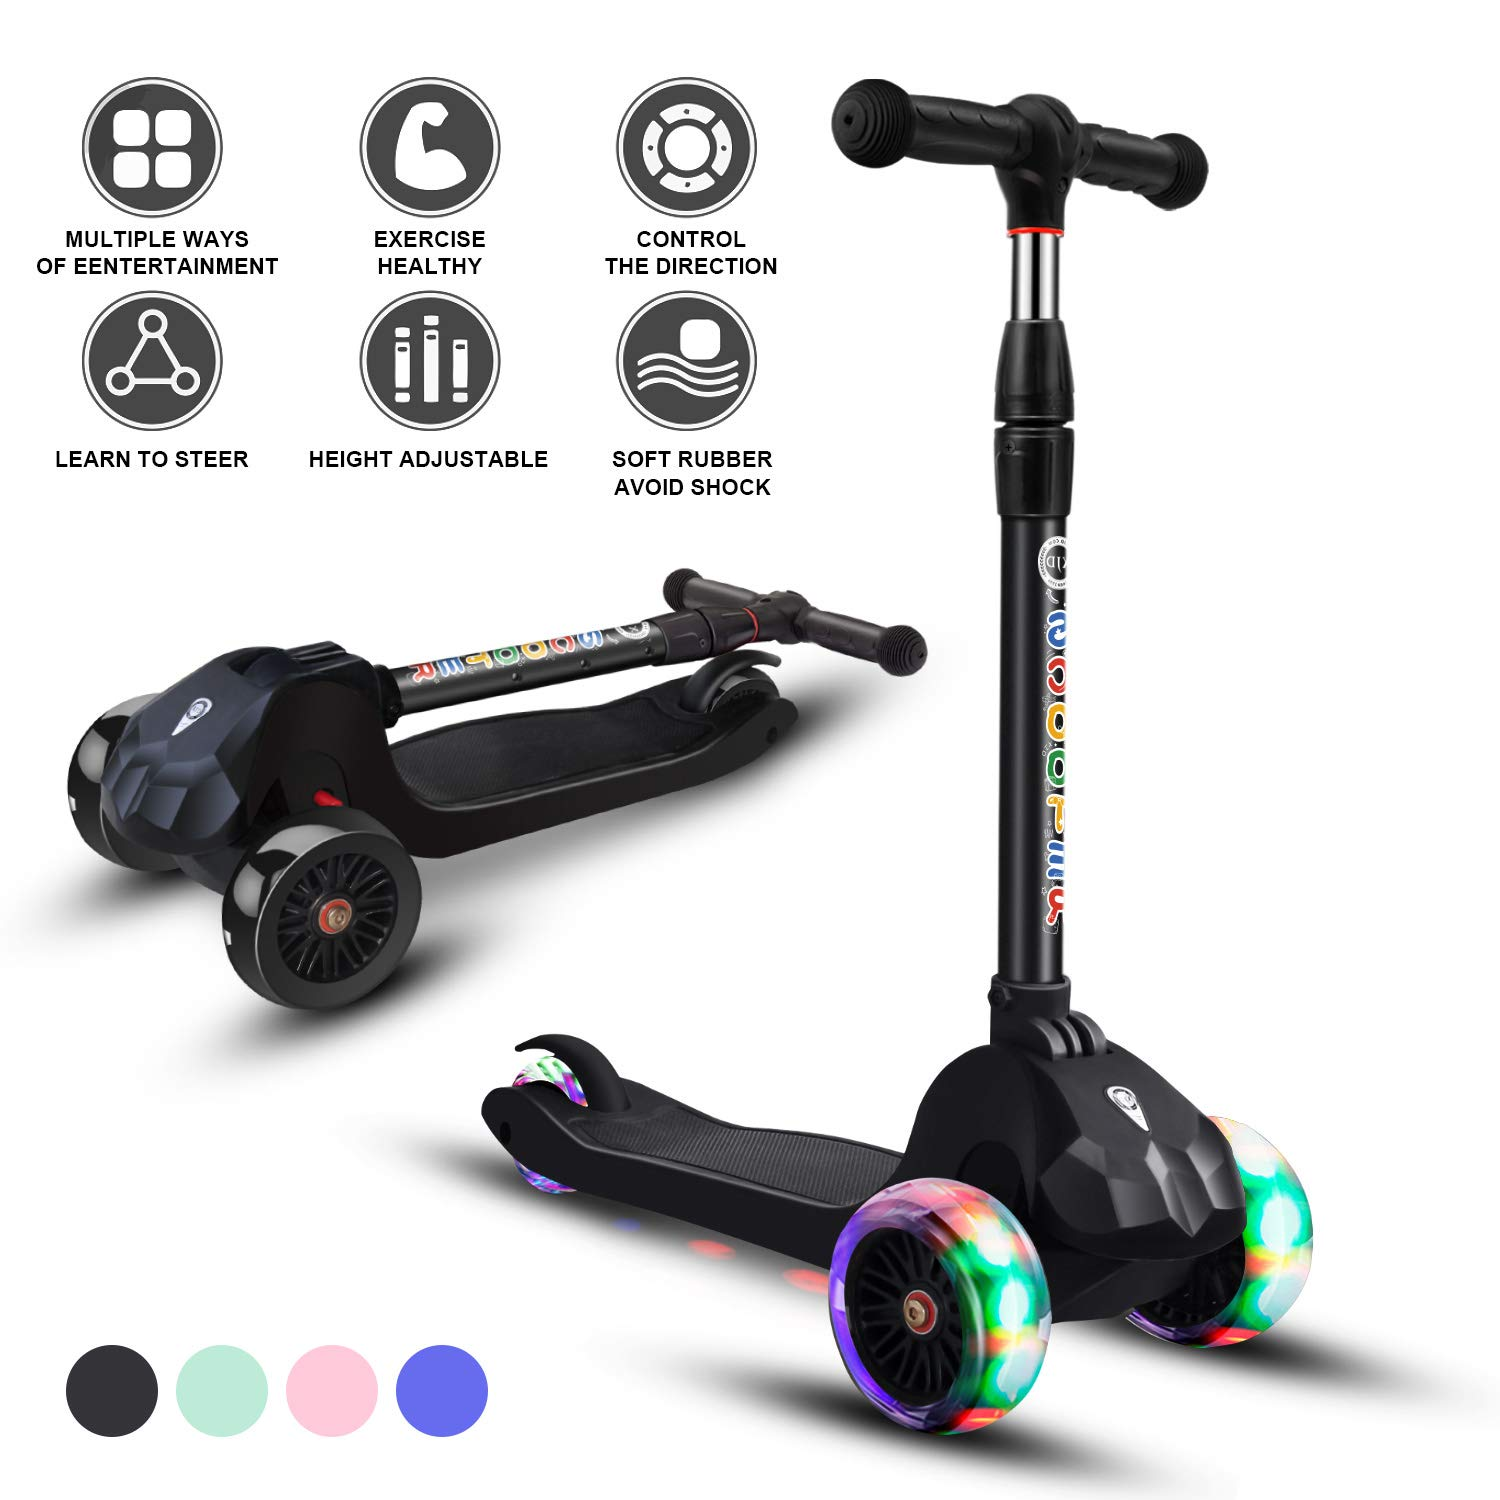 Scooter for Kids Kick Scooters Toddler Scooters 3 Wheels Adjustable Height Handle Scooter Lean to Steer with PU Flashing Wheels Wide Deck Scooters for Boys Girls Children from 3 to 9 Year Old (Black) by Glaf